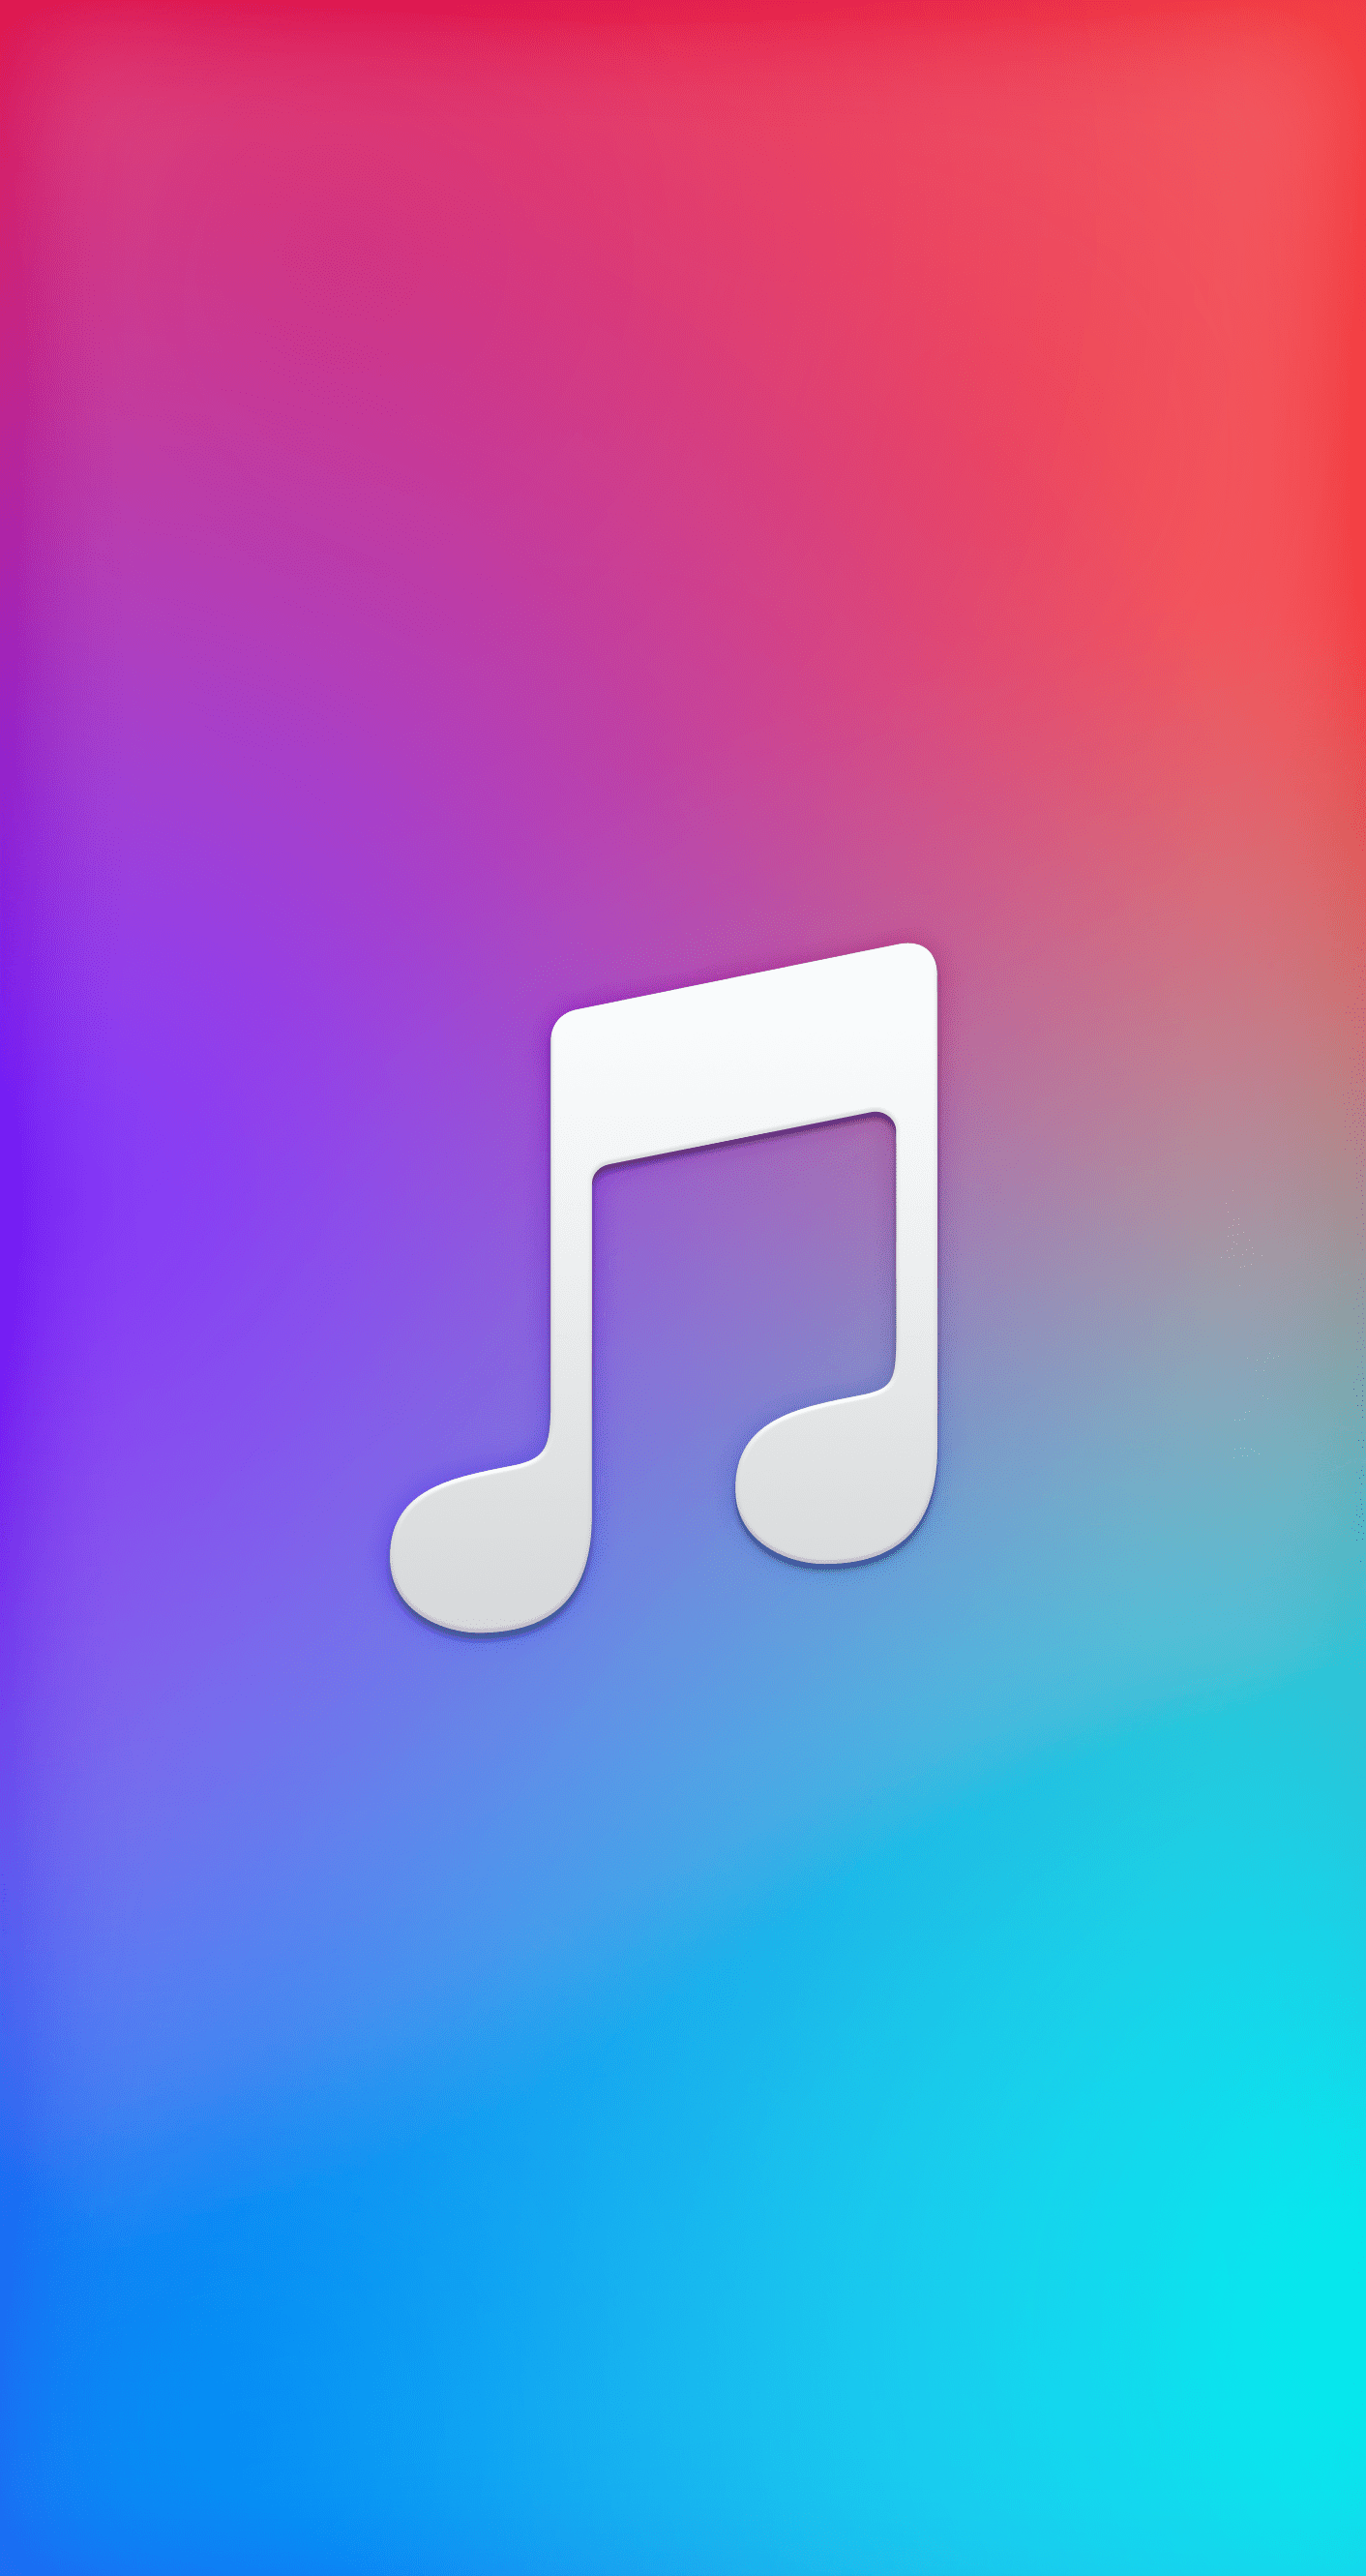 Music Hd Iphone Wallpapers Wallpaper Cave